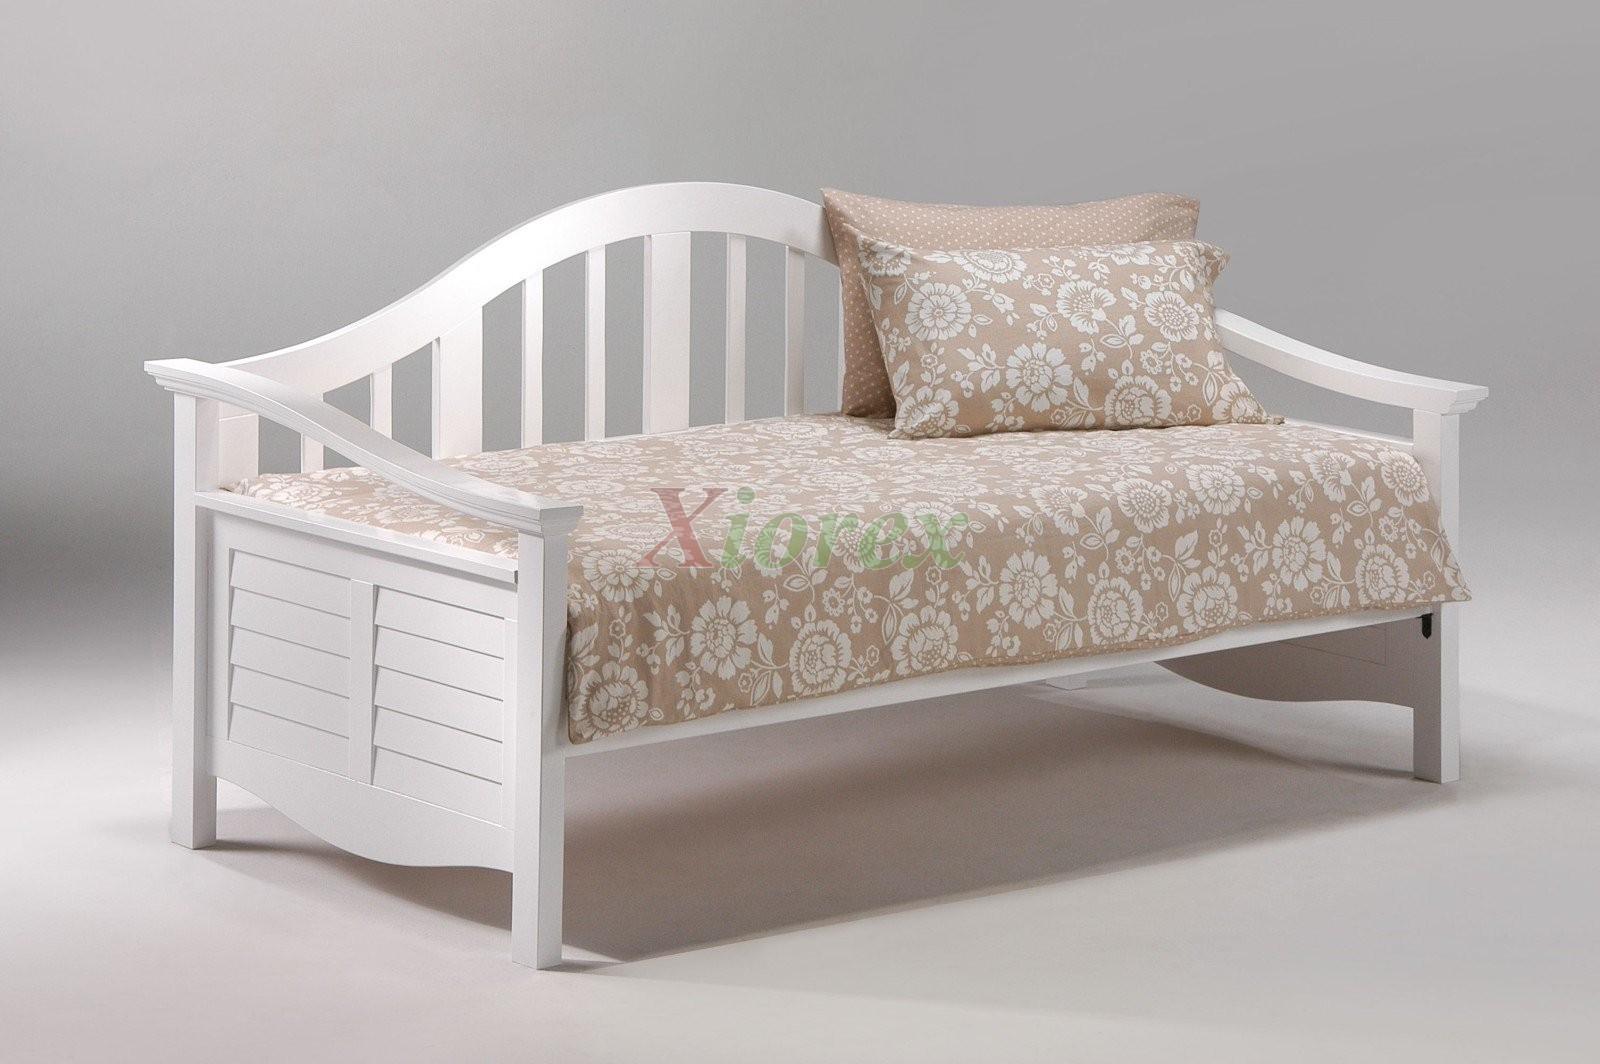 seagull daybed twin size white day bed with trundle bed. Black Bedroom Furniture Sets. Home Design Ideas